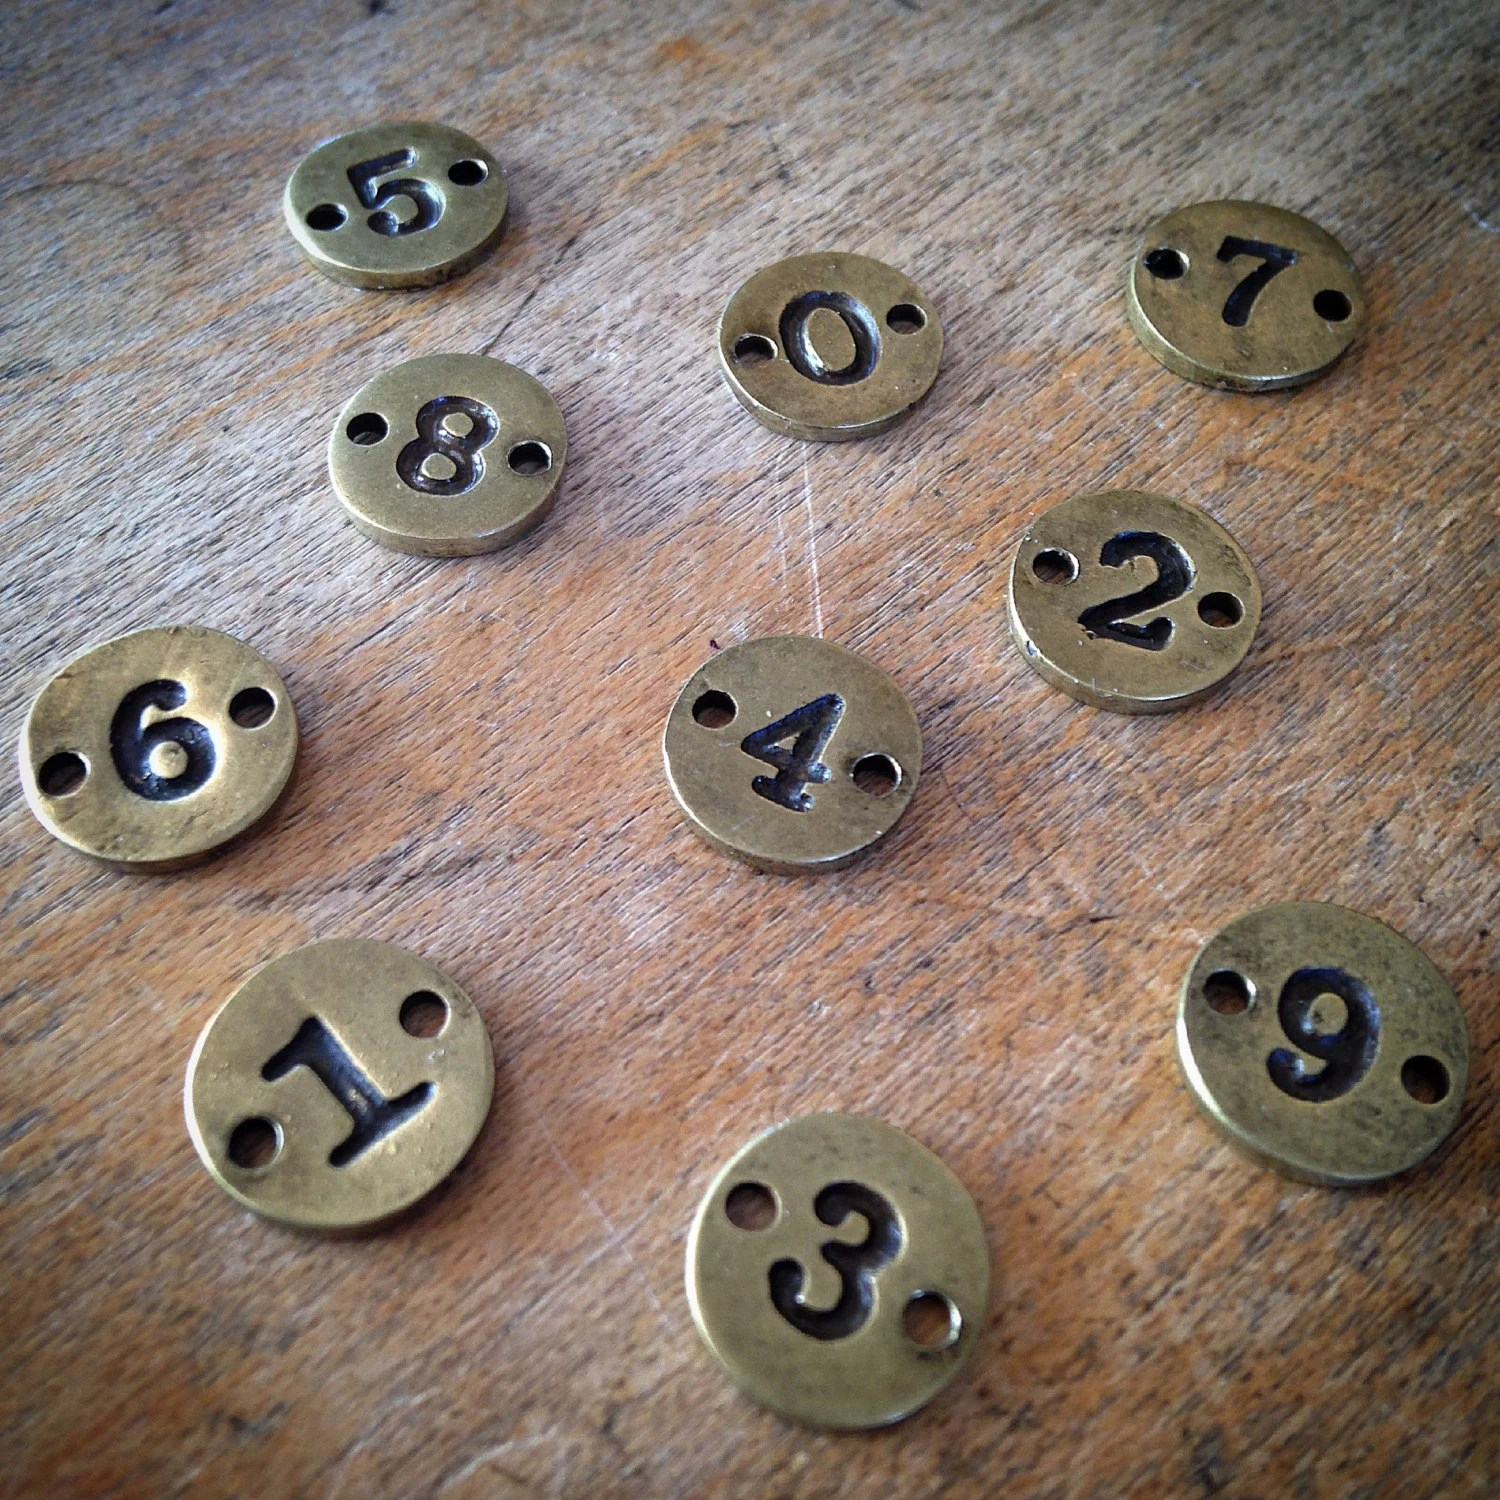 10 Pcs Number Charms 0 9 10mm Charm Numbers Antique Bronze